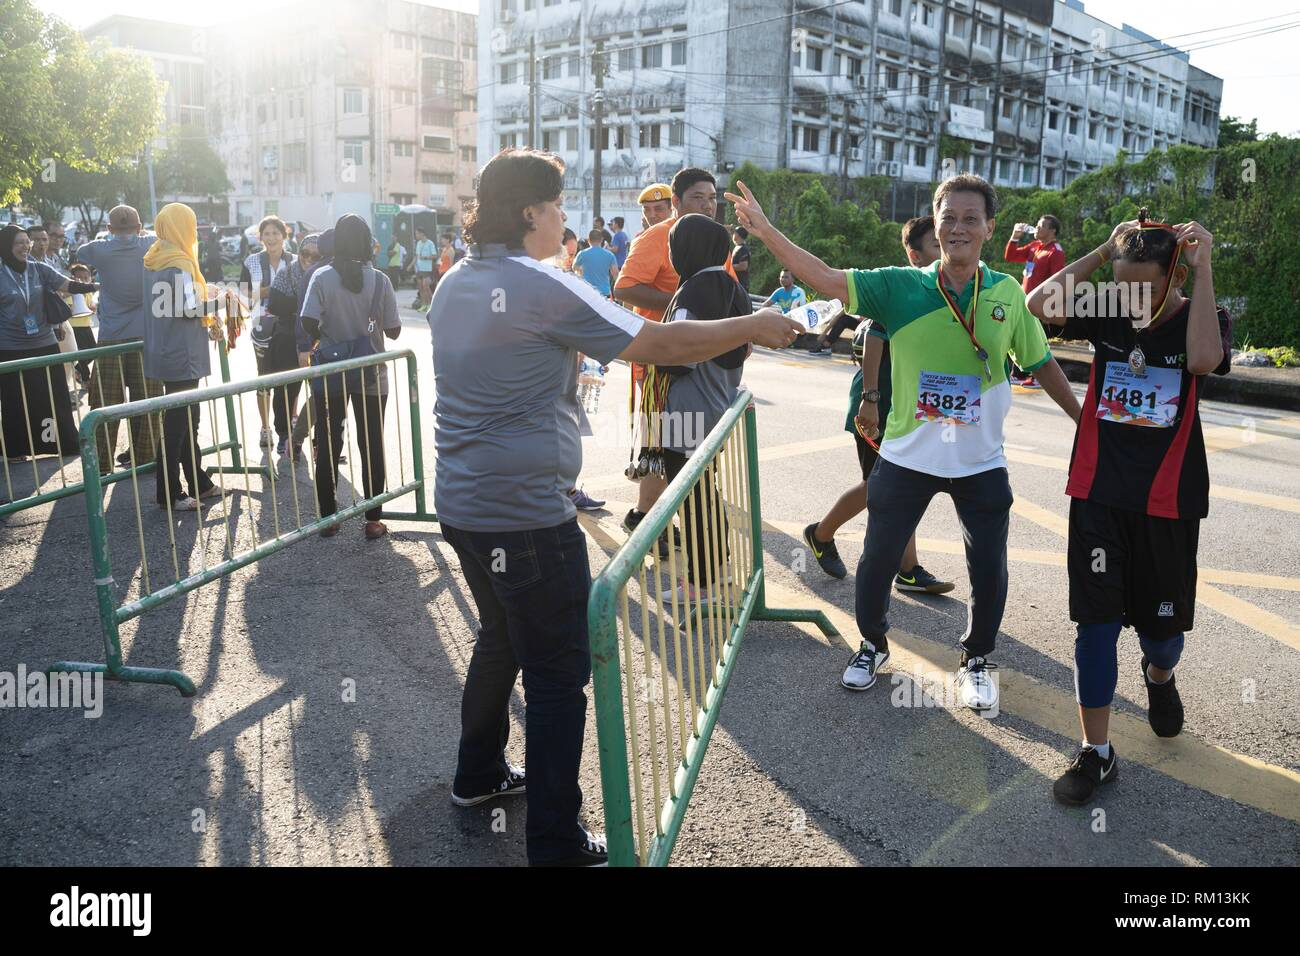 Happy runners at the finish line of the Kuching City North fun run at Kampung Ajibah ABol, Kuching, Sarawak, Malaysia - Stock Image